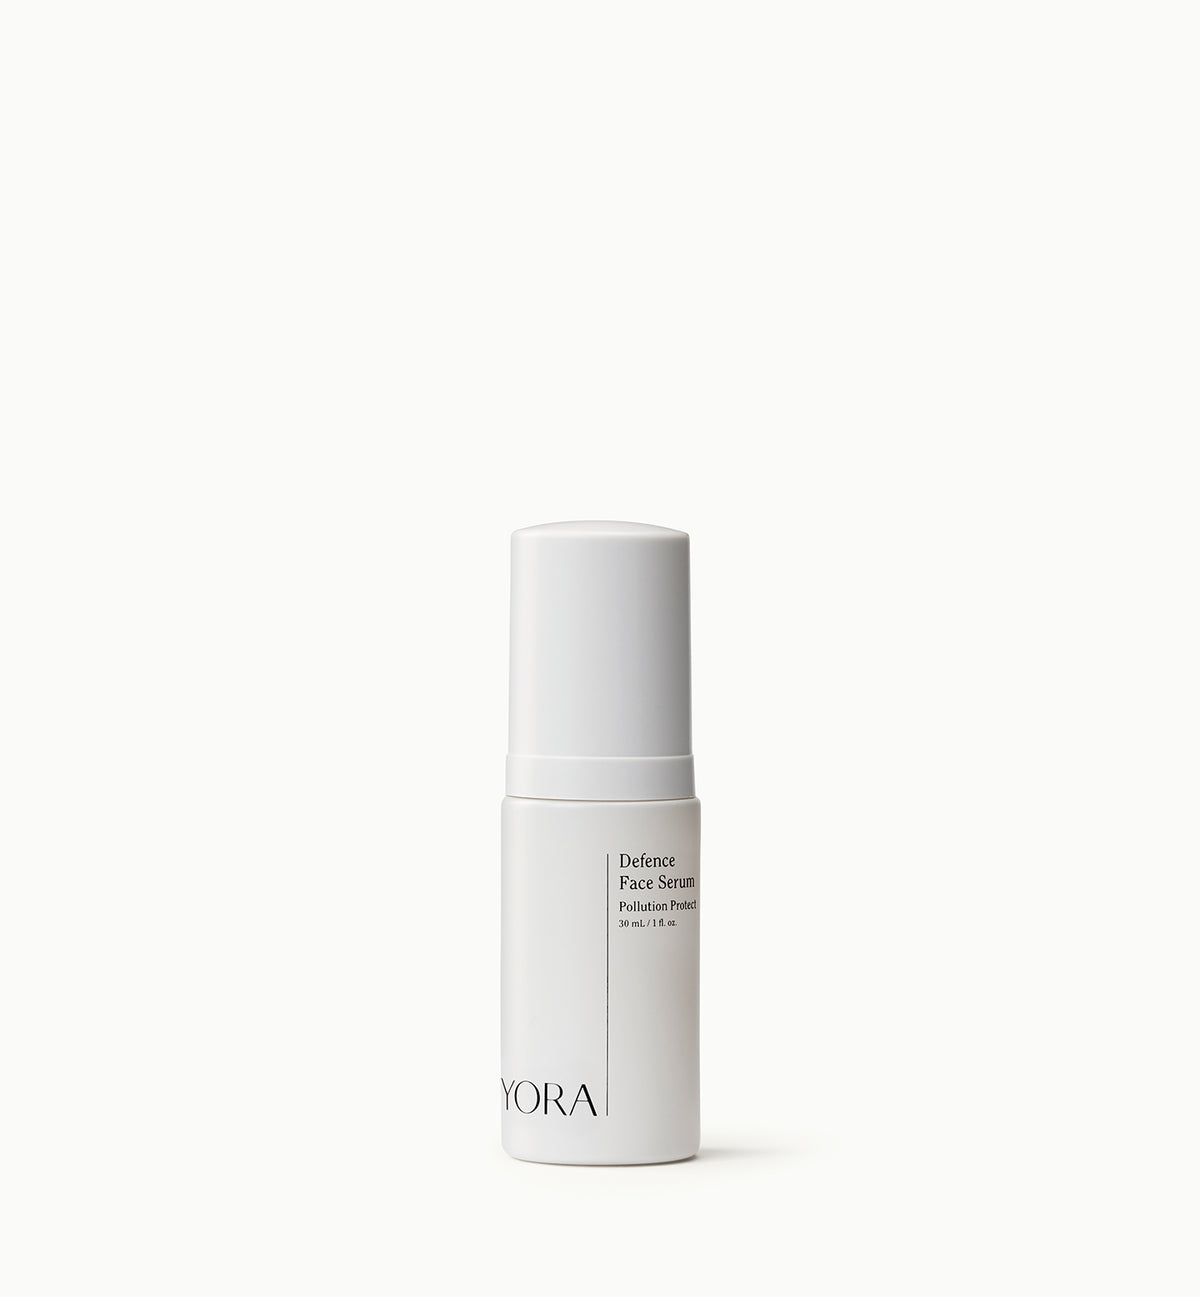 Defence Face Serum